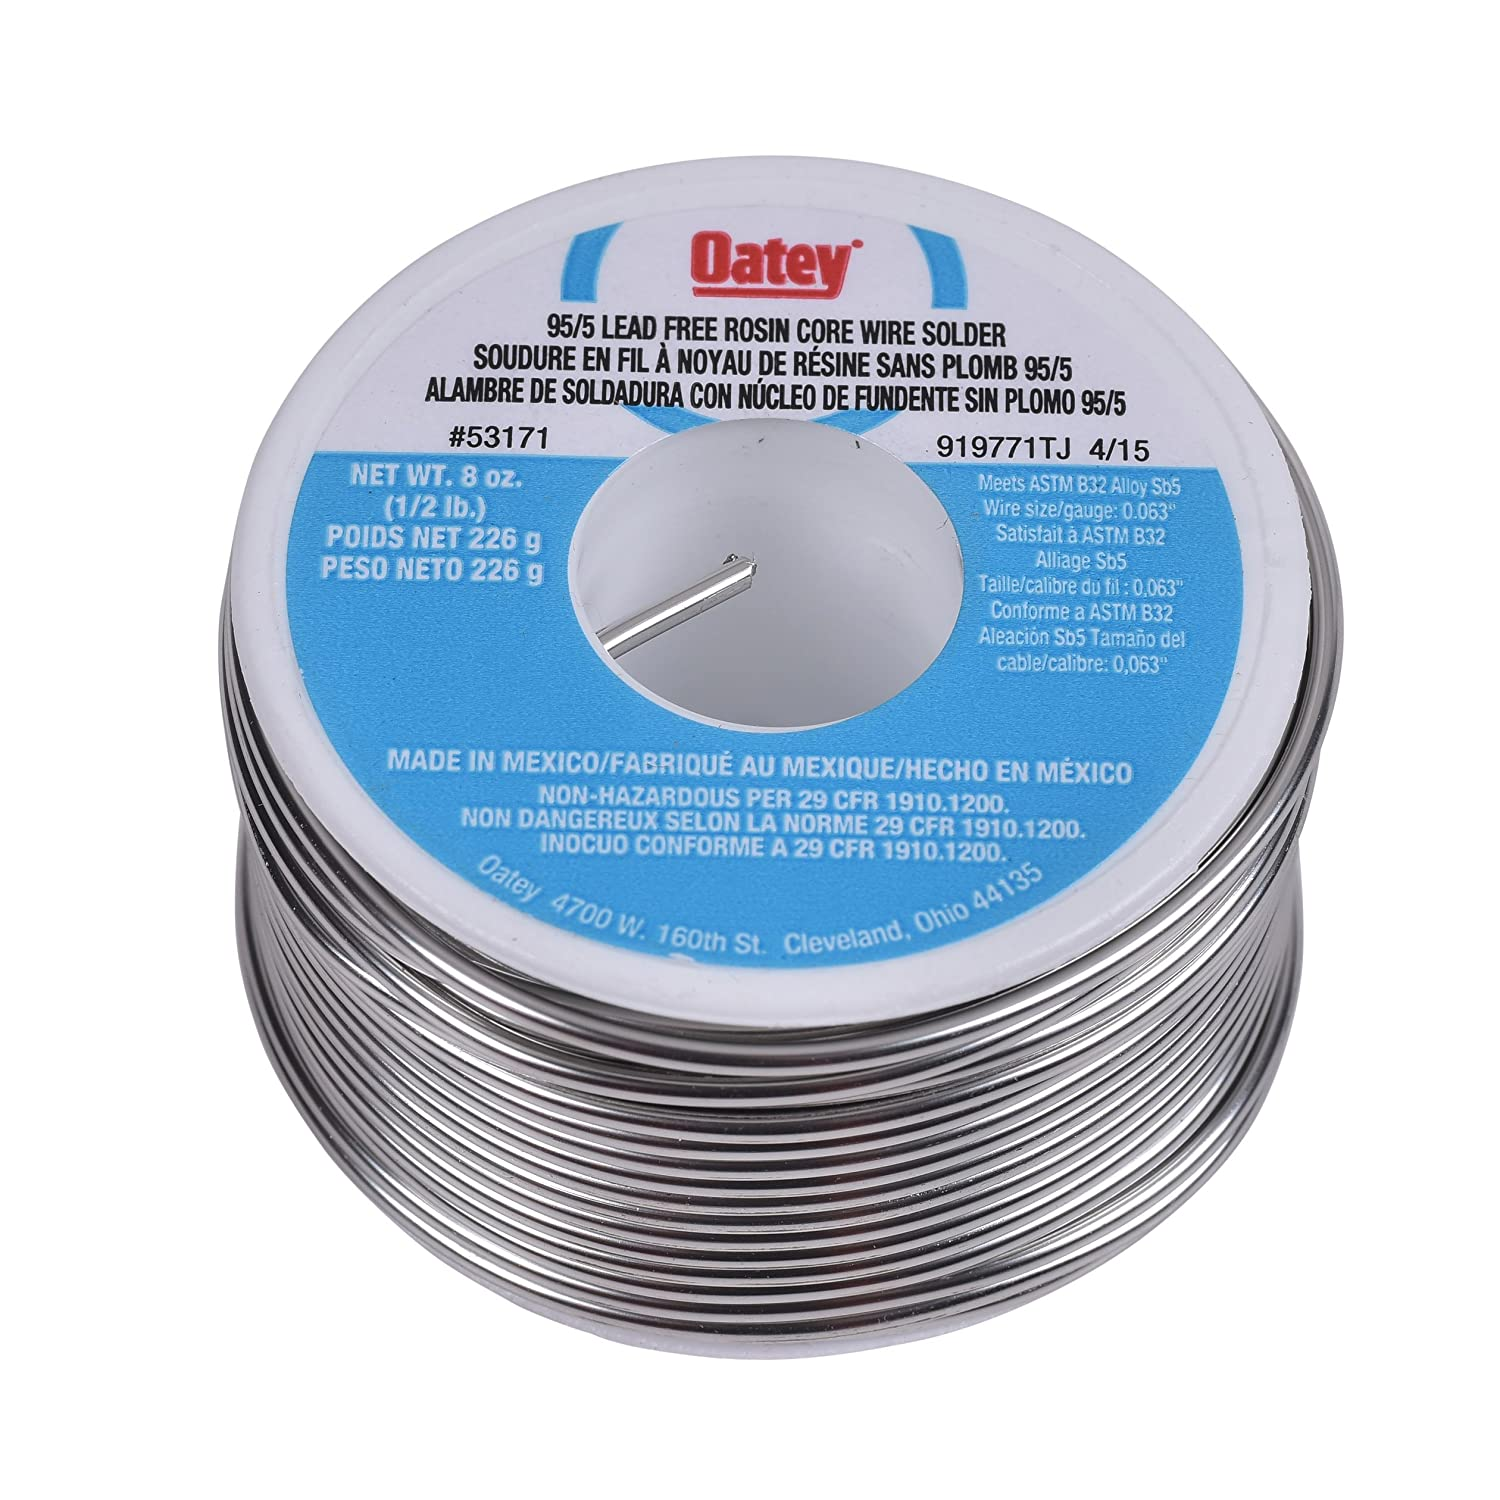 Oatey 53171 Rosin Core Wire Solder, 0.5 Lb Bulk, Solid, Gray 1/2 lb - - Amazon.com